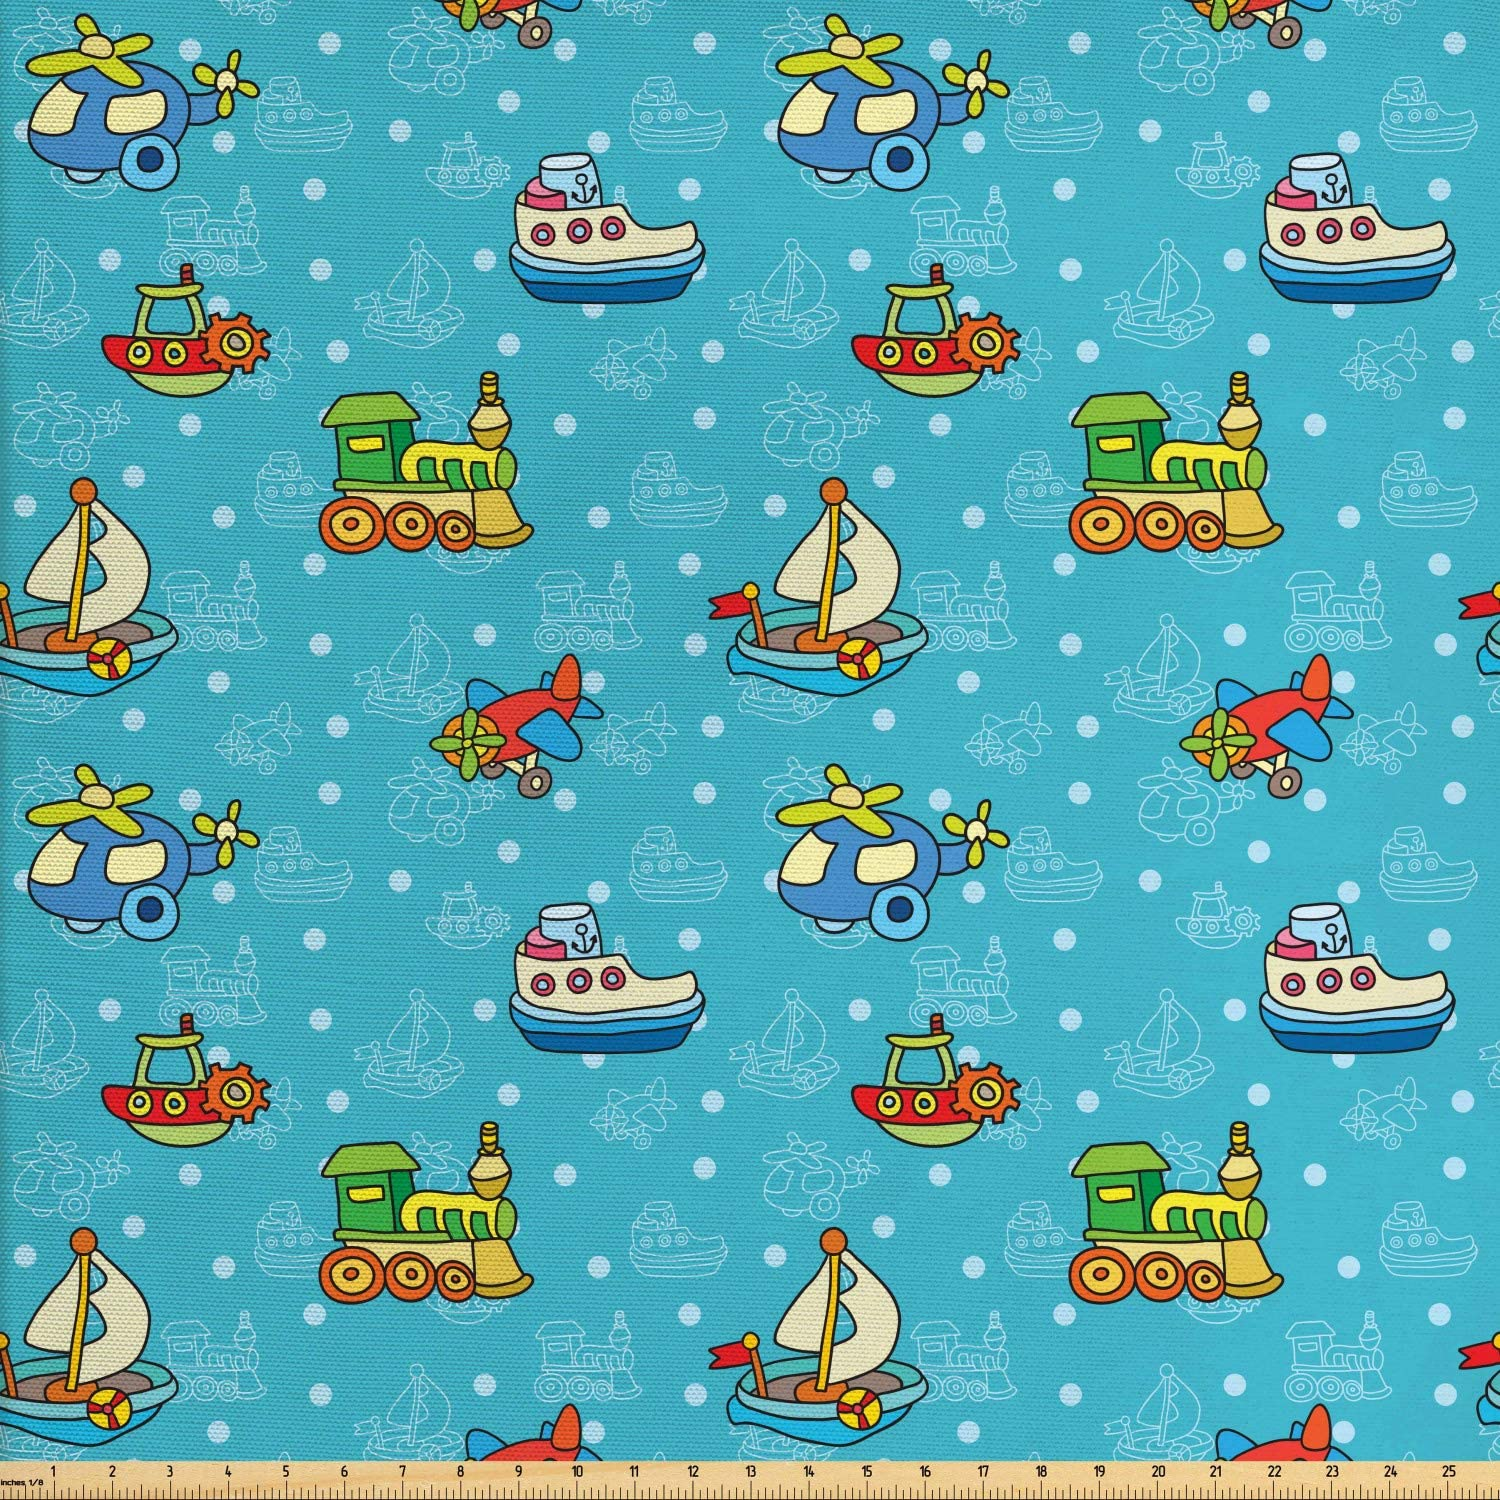 Ambesonne Plane Fabric by The Yard, Colorful Cartoon Children Toy Pattern Boats Planes Trains on Blue Background, Decorative Fabric for Upholstery and Home Accents, 1 Yard, Sea Blue